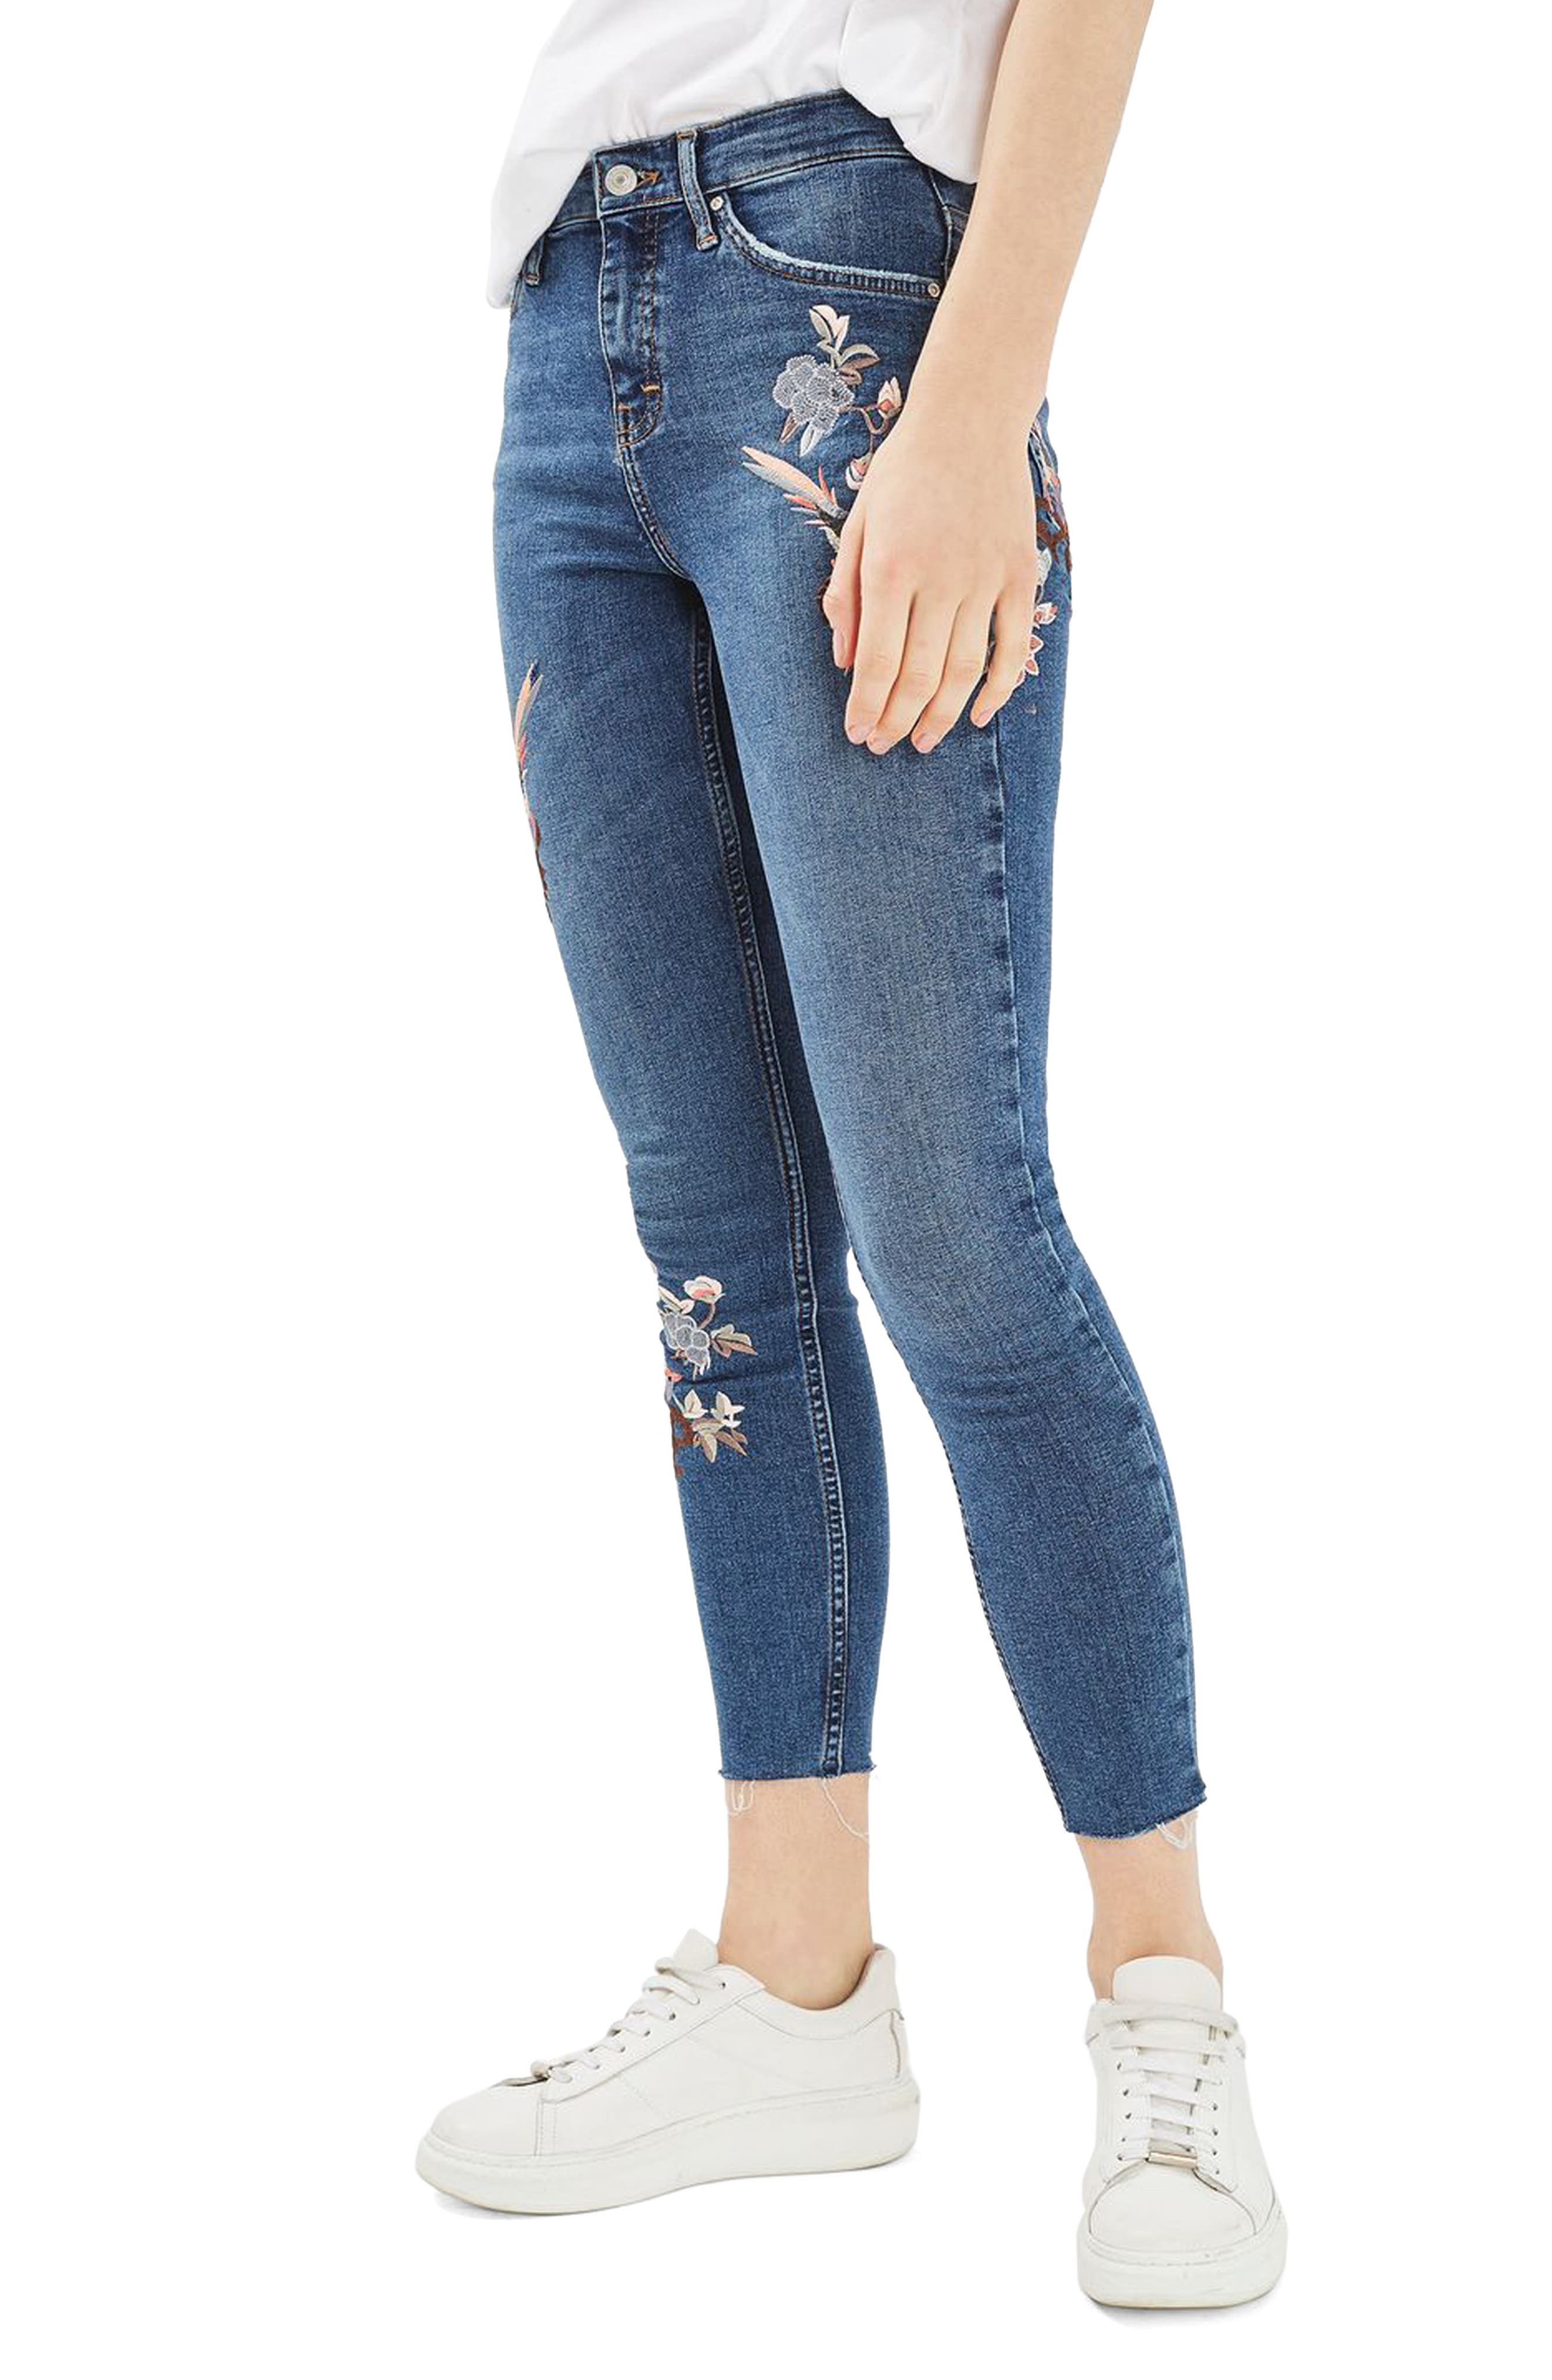 Moto Jamie Embroidered Skinny Jeans,                             Main thumbnail 1, color,                             400